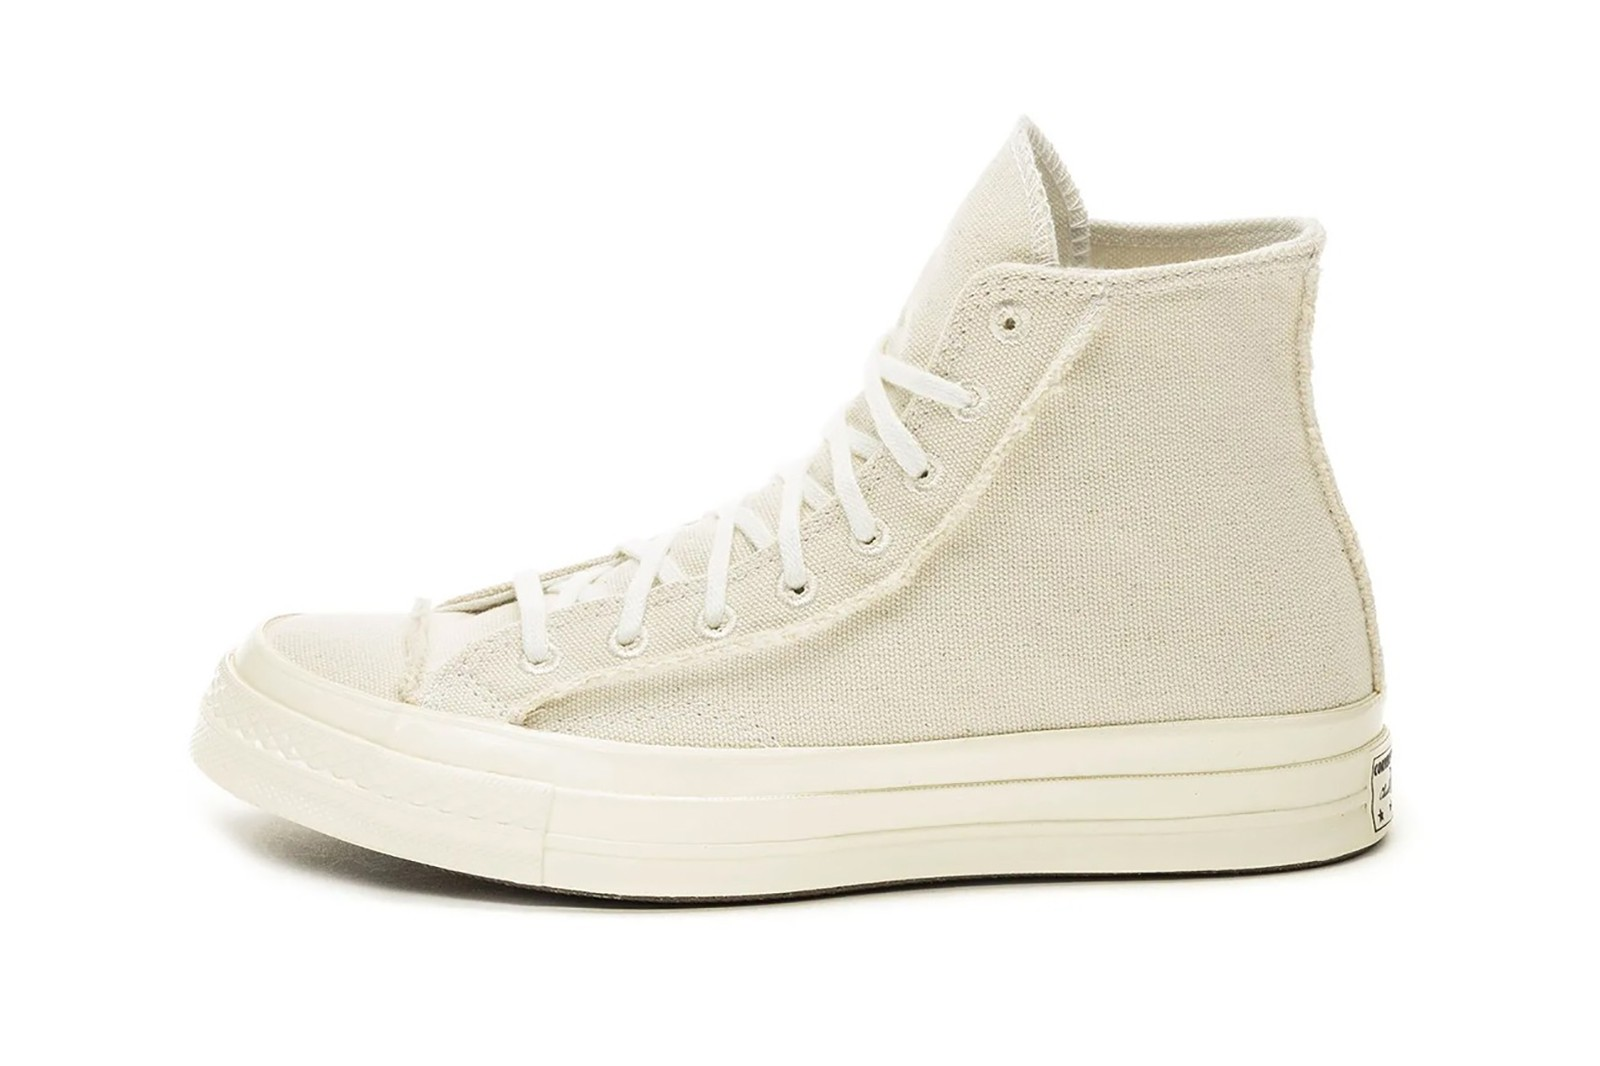 converse chuck 70 hi ox sneakers beige upcycled sustainability shoes footwear sneakerhead